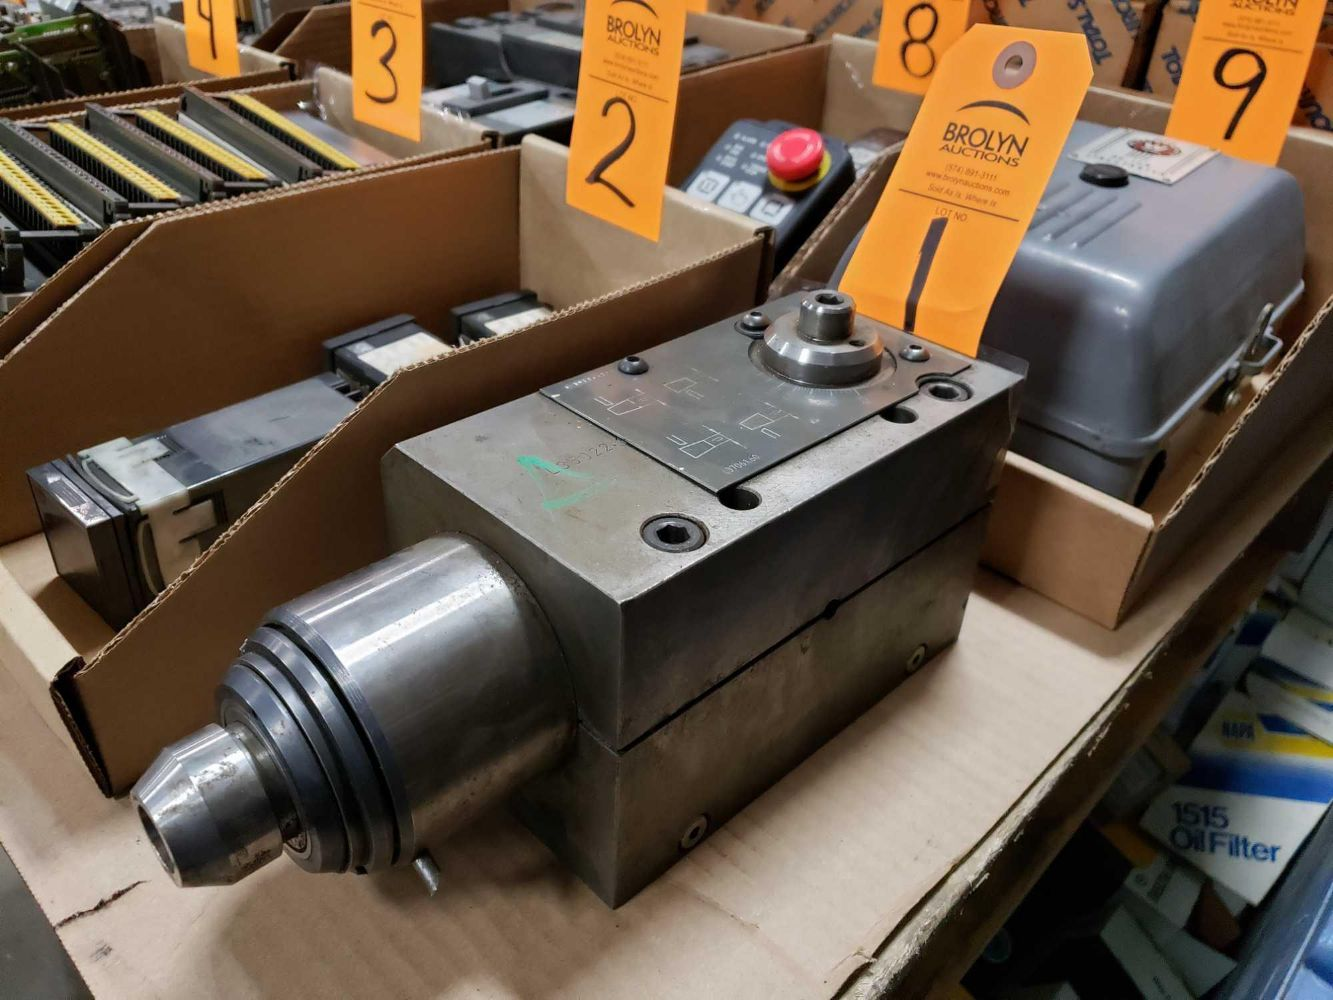 Late March General Consignment Auction: Factory Equipment, MRO spares, and MORE!